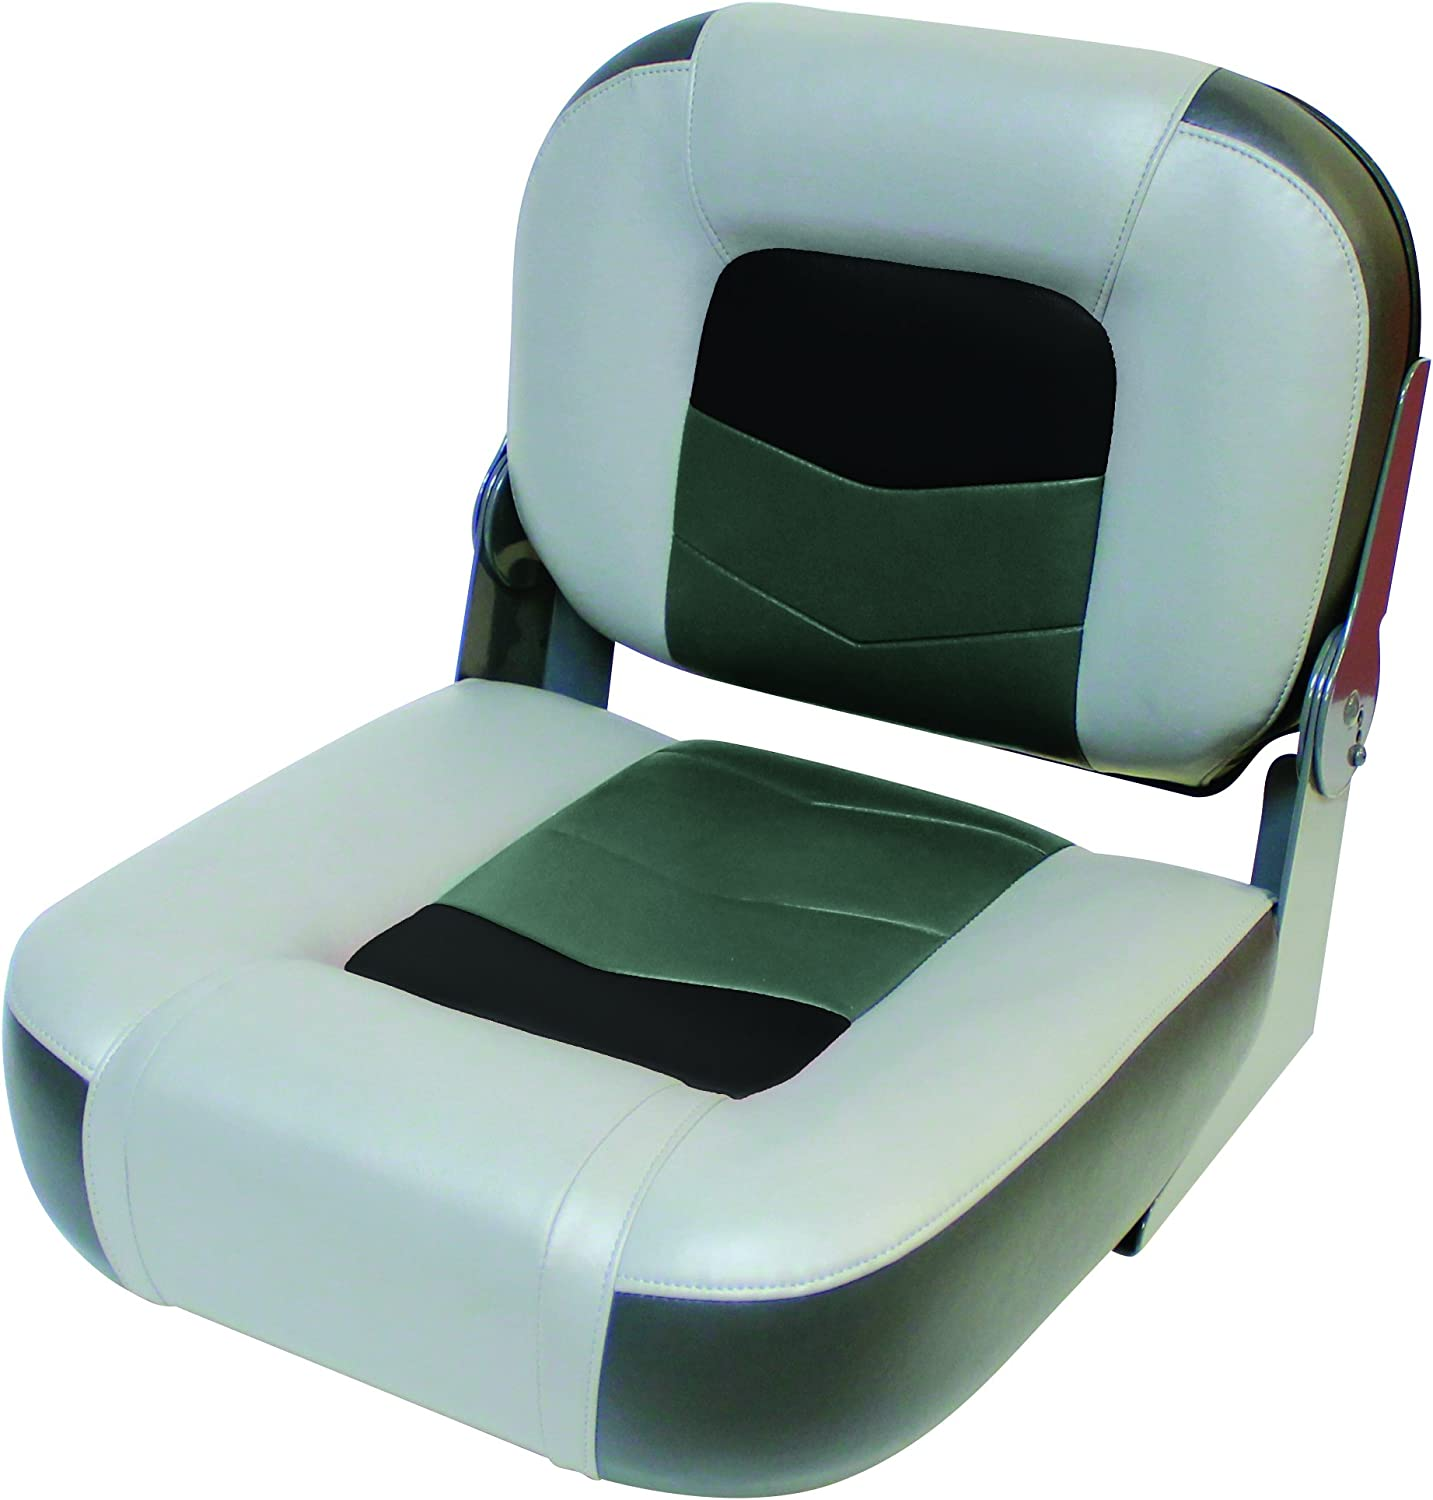 Wise Pro-Angler 17 Center Seat